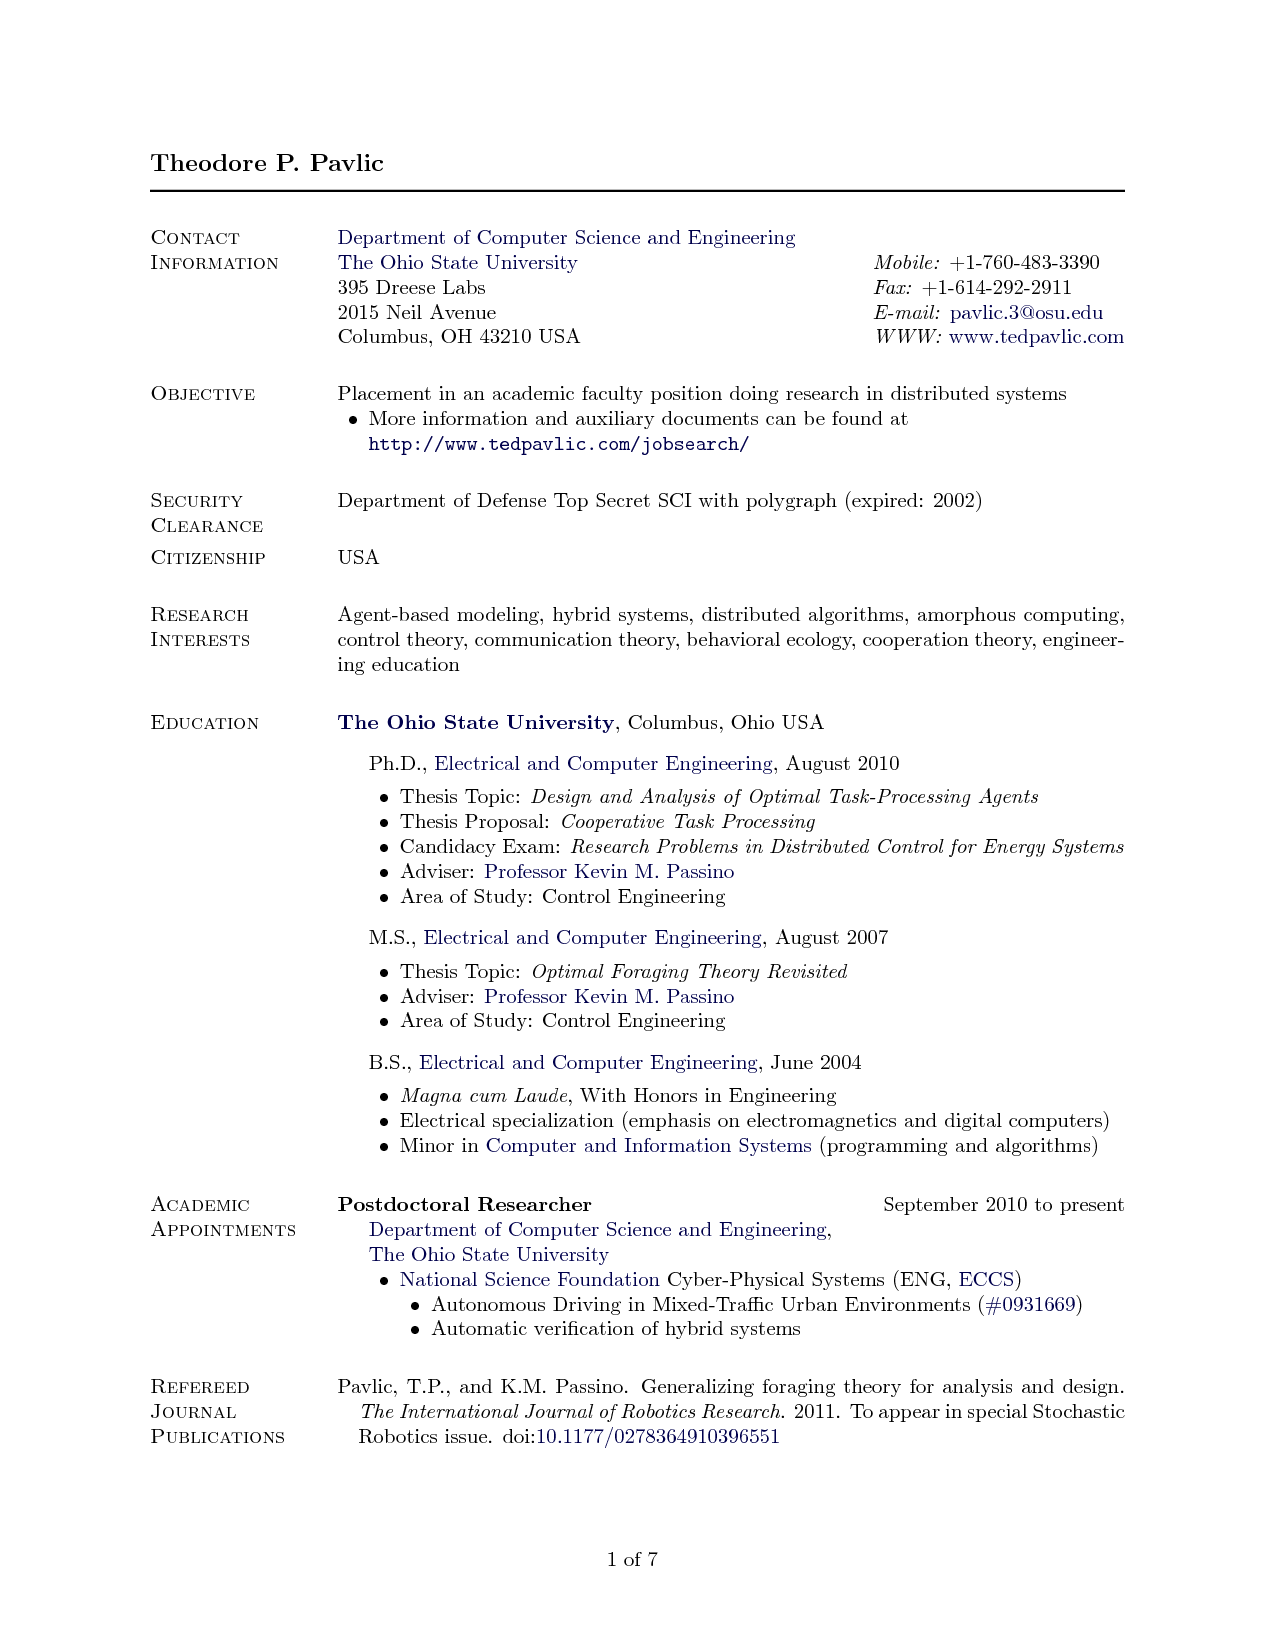 What Size Font Should A Resume Be Typed In Latex Resume Tamplete Computer Science Printable Receipt